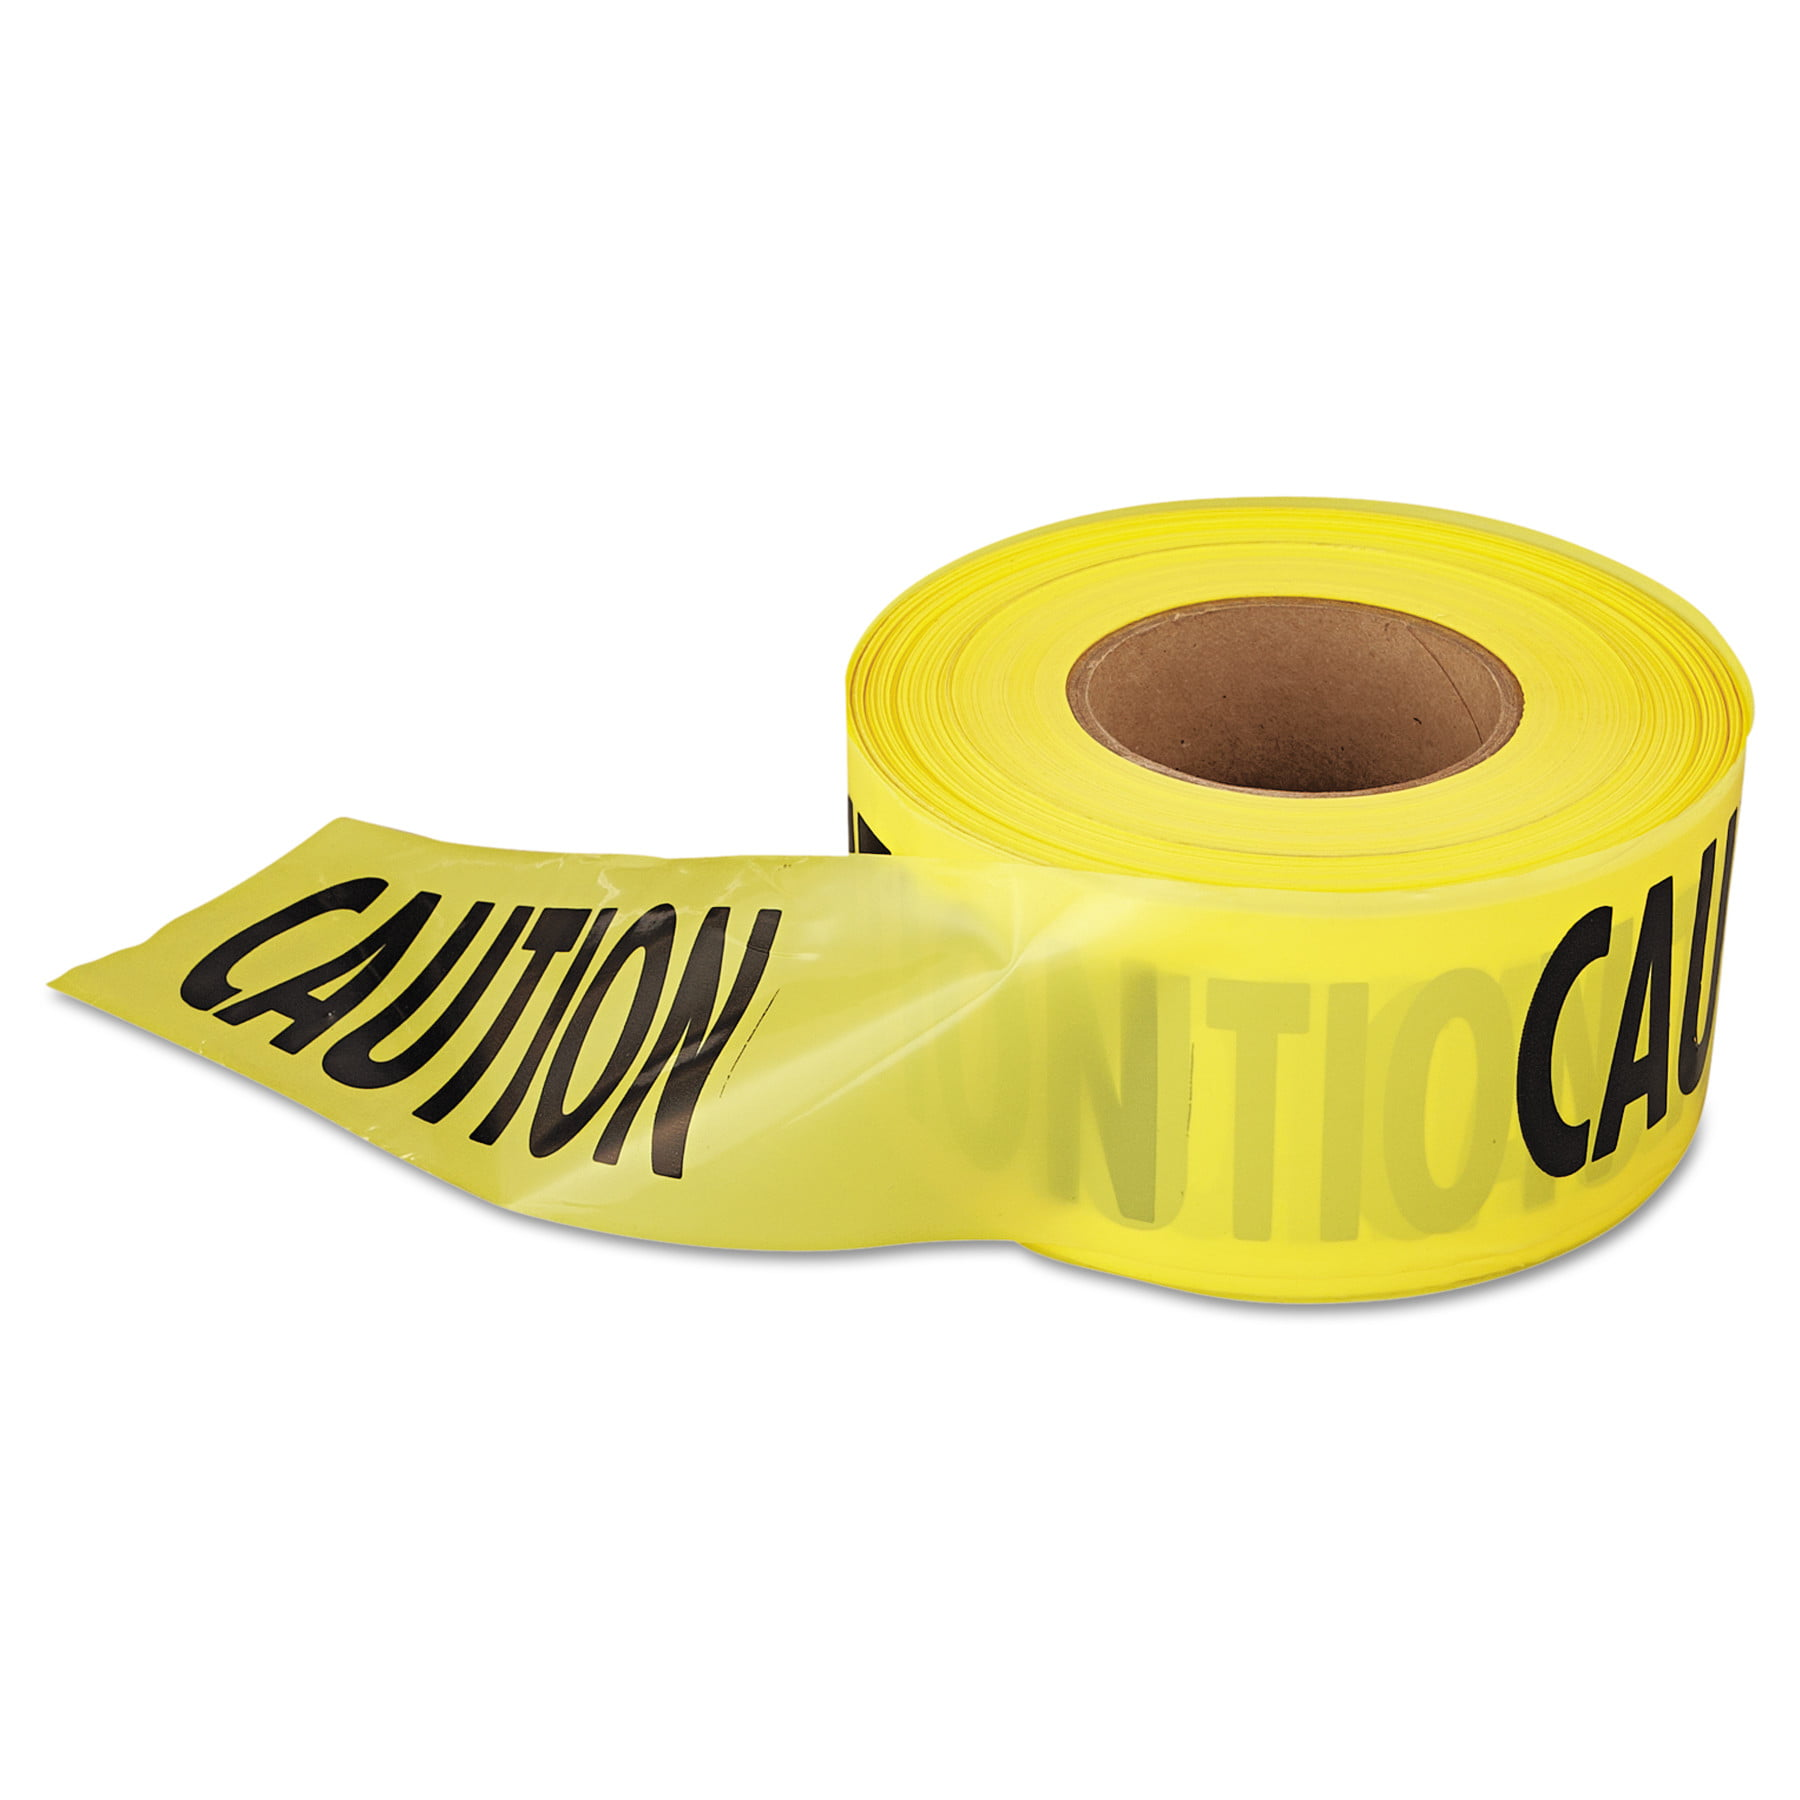 "Empire 1,000 ft. x 3 in. ""Caution"" Barricade Tape (Yellow) by EMPIRE LEVEL INCORPORATED"